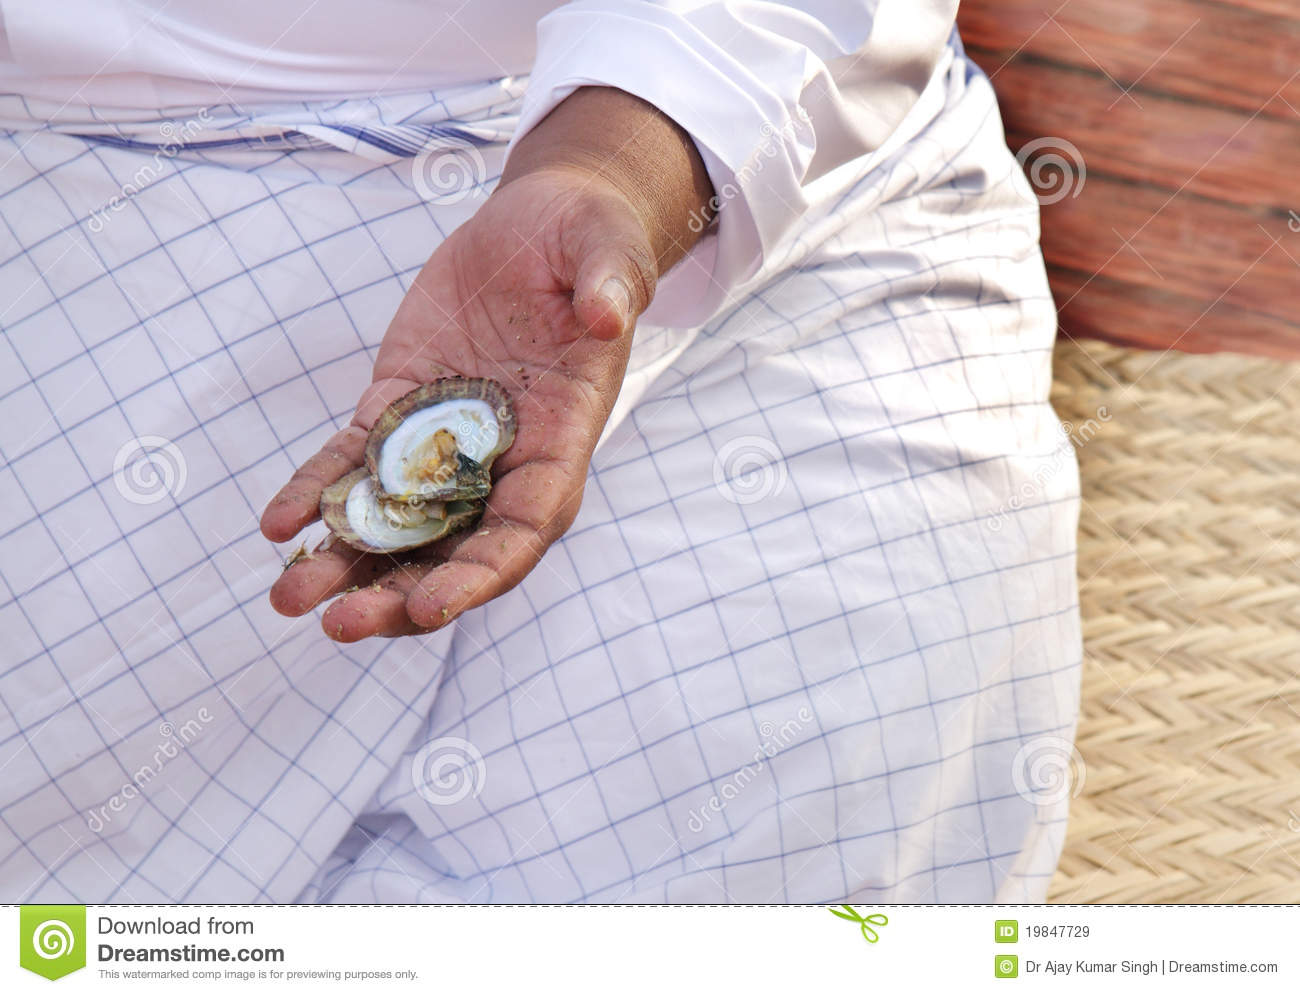 Display Of Pearl Oyster By Expert Royalty Free Stock